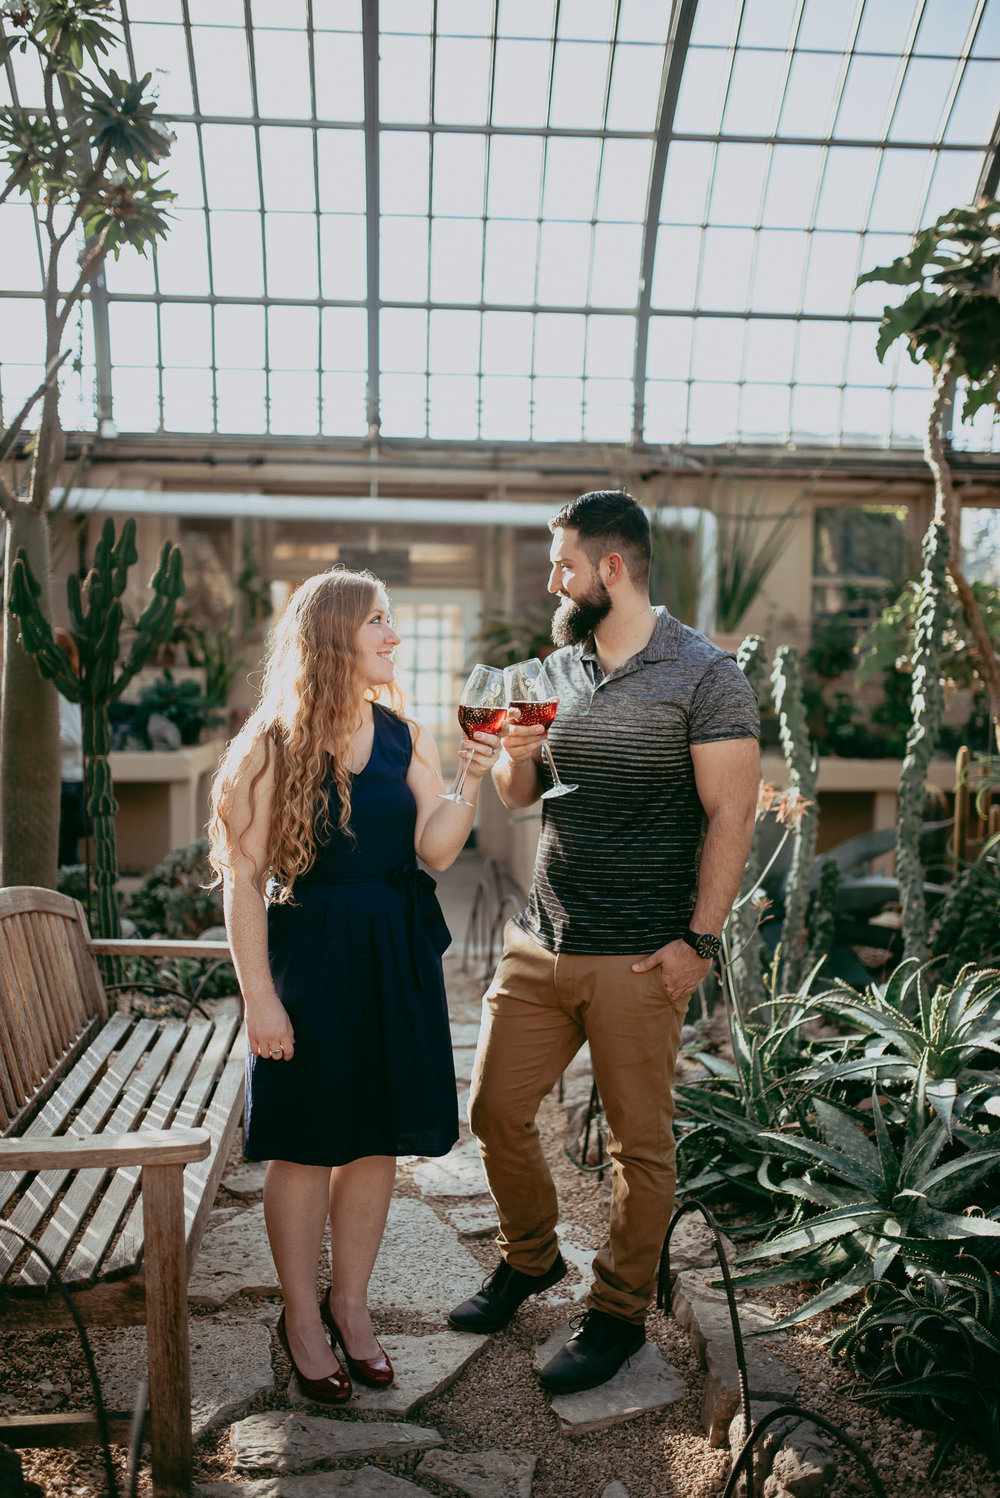 garfield-conservatory-engagement-photos-chicago-il-photographers-38.jpg